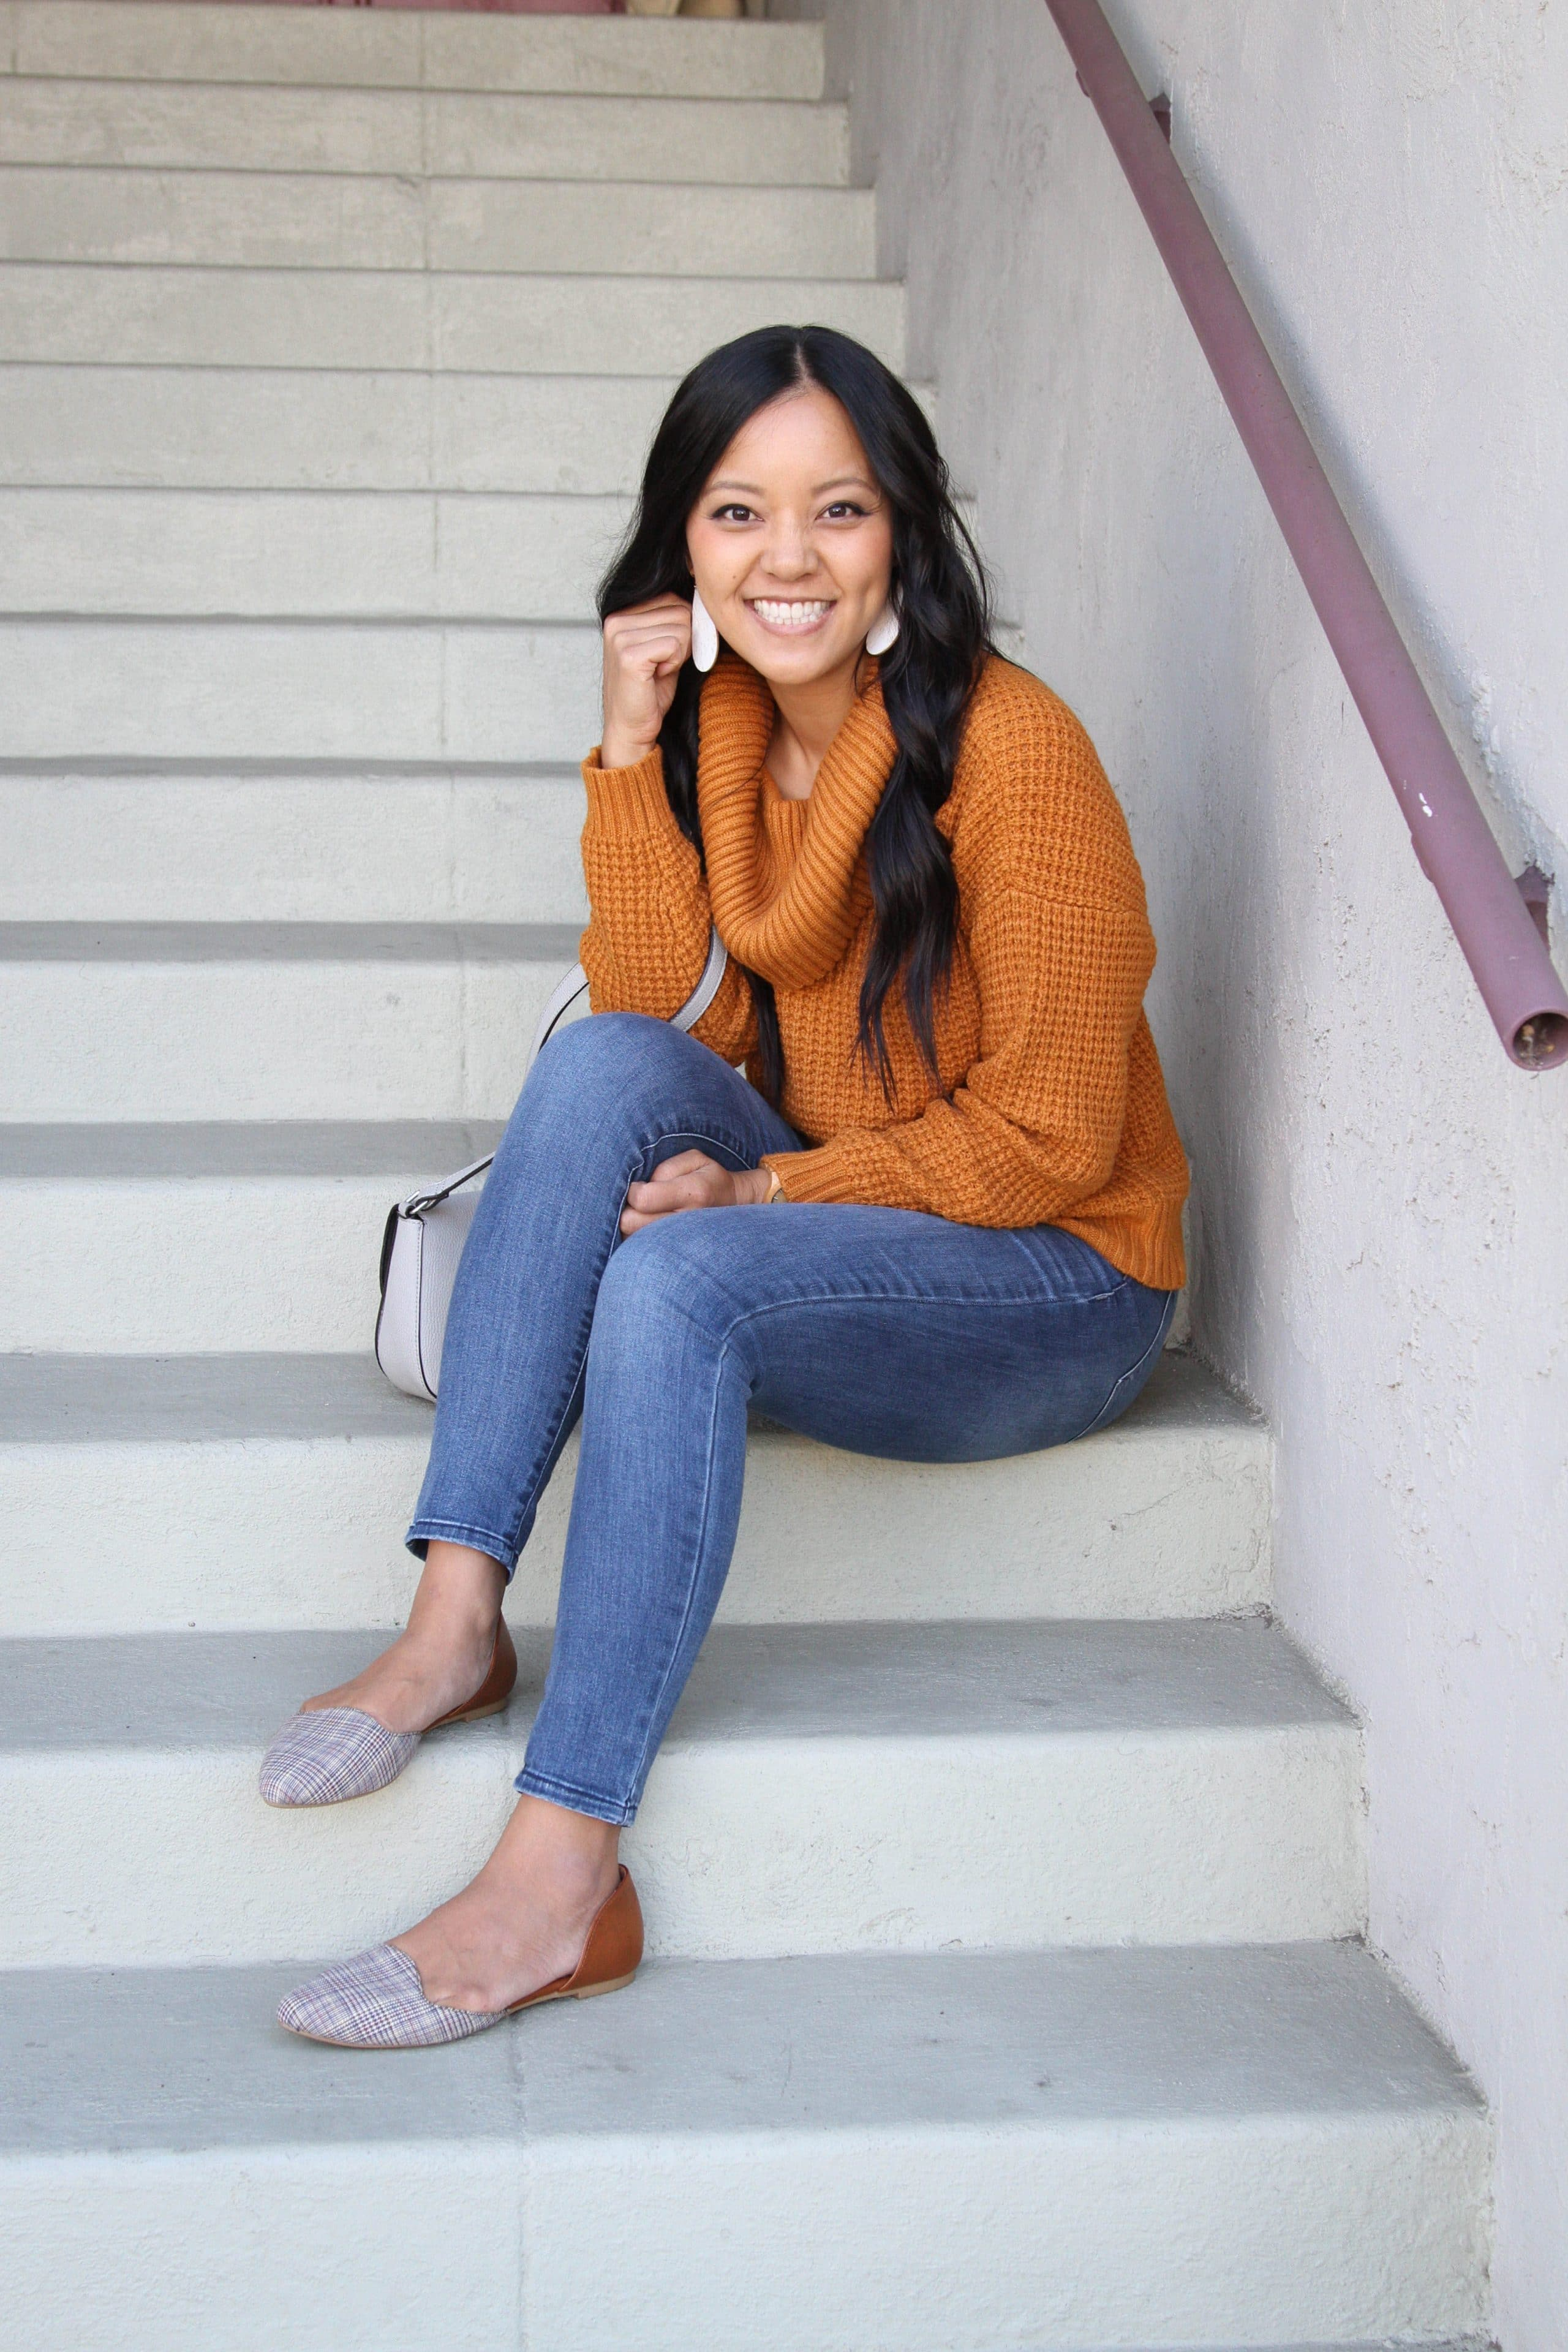 Printed Flats + light skinnies + cowl neck orange sweater + gray bag